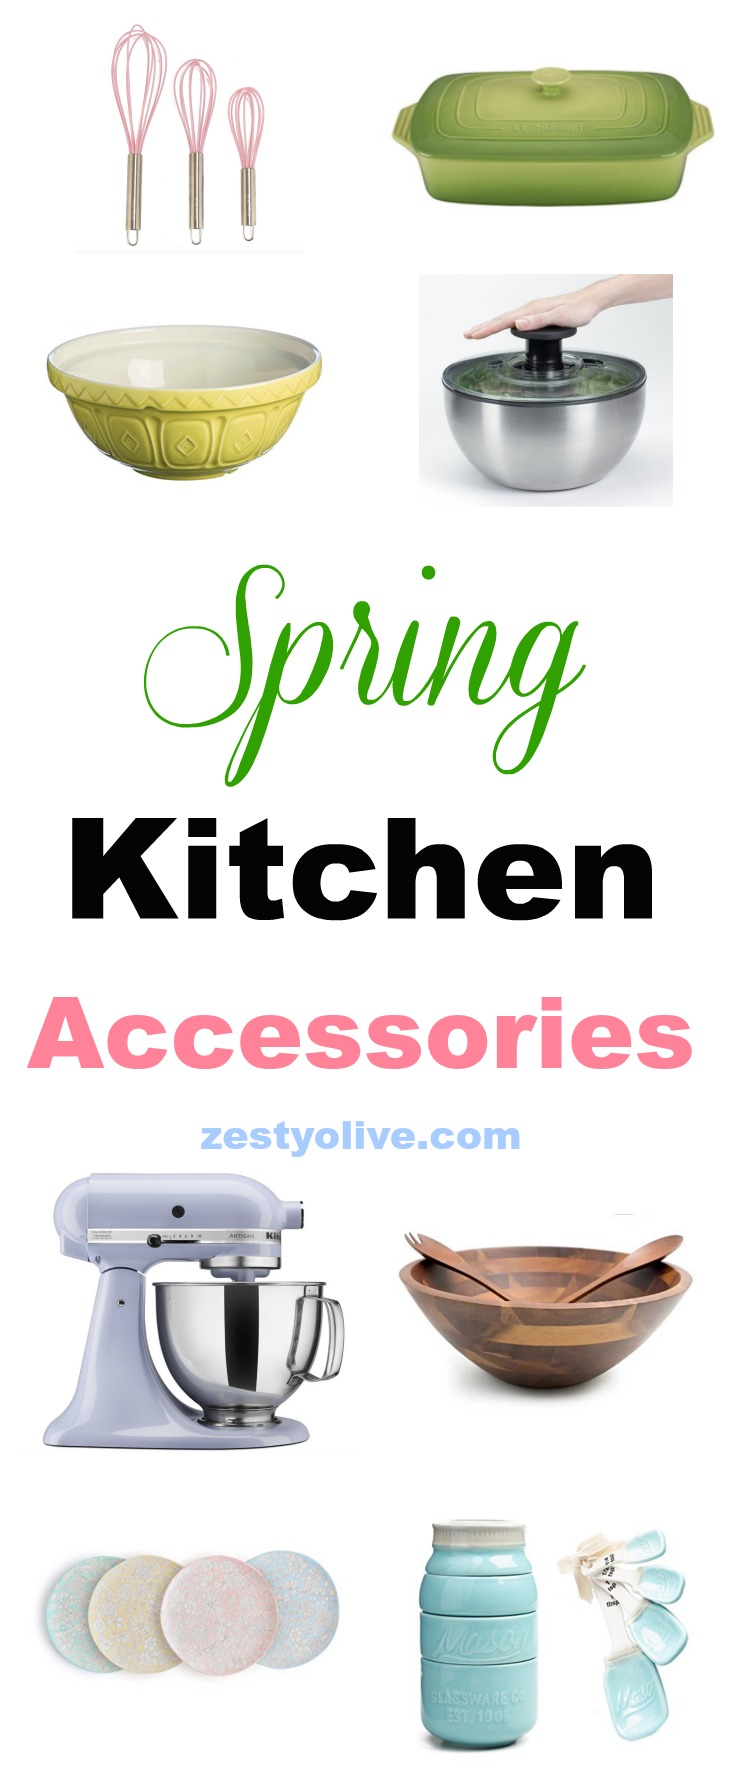 Functional kitchen accessories get a spring decor makeover with hues of yellow, blue, green and pink to brighten up the space. This list is proof that tableware, gadgets and appliances can usher in spring without compromising practicality.